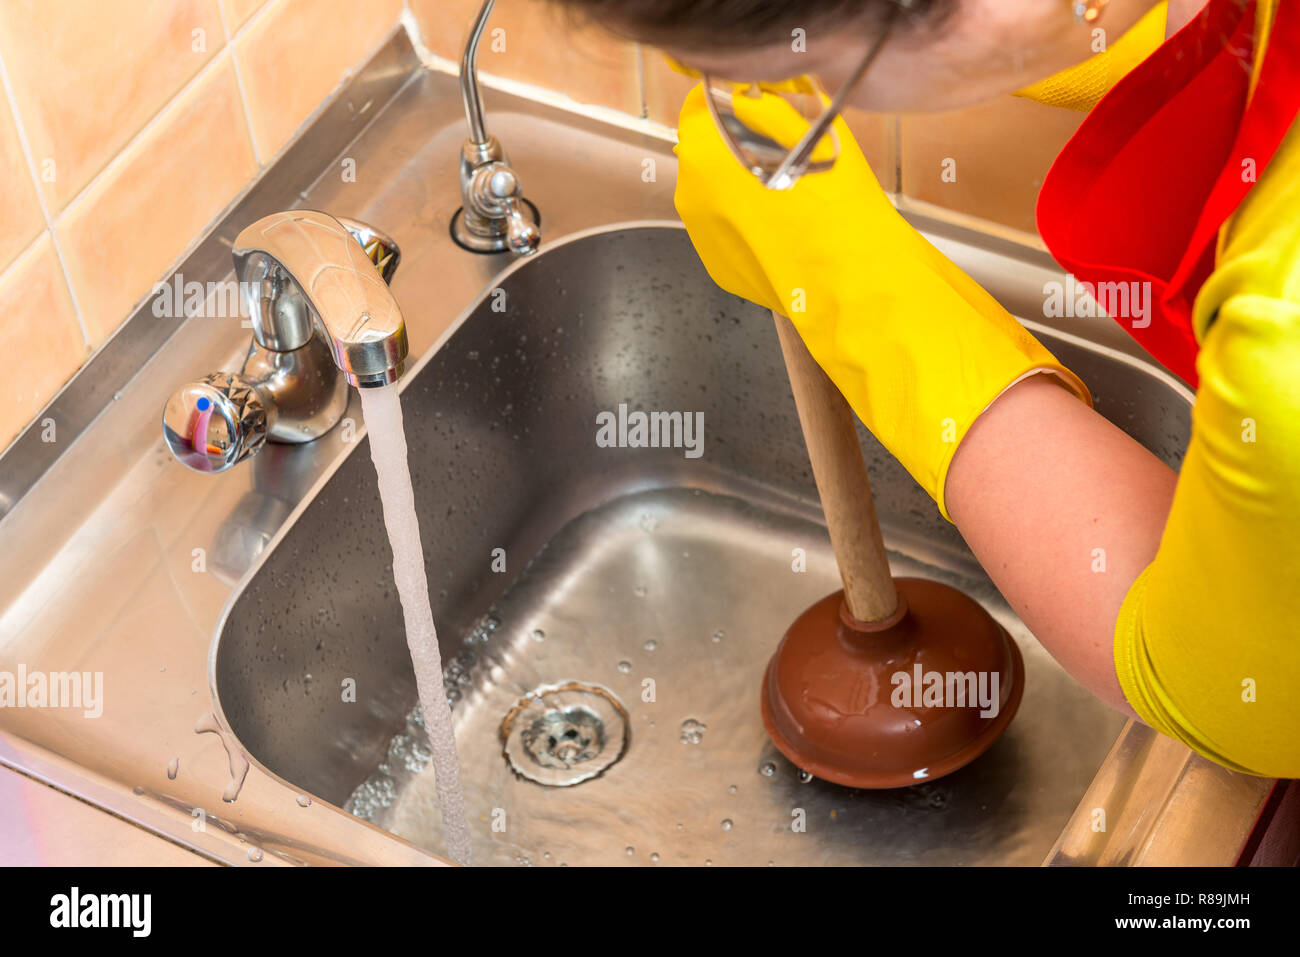 Cleaning Clogged Pipes In The Kitchen Sink With A Plunger